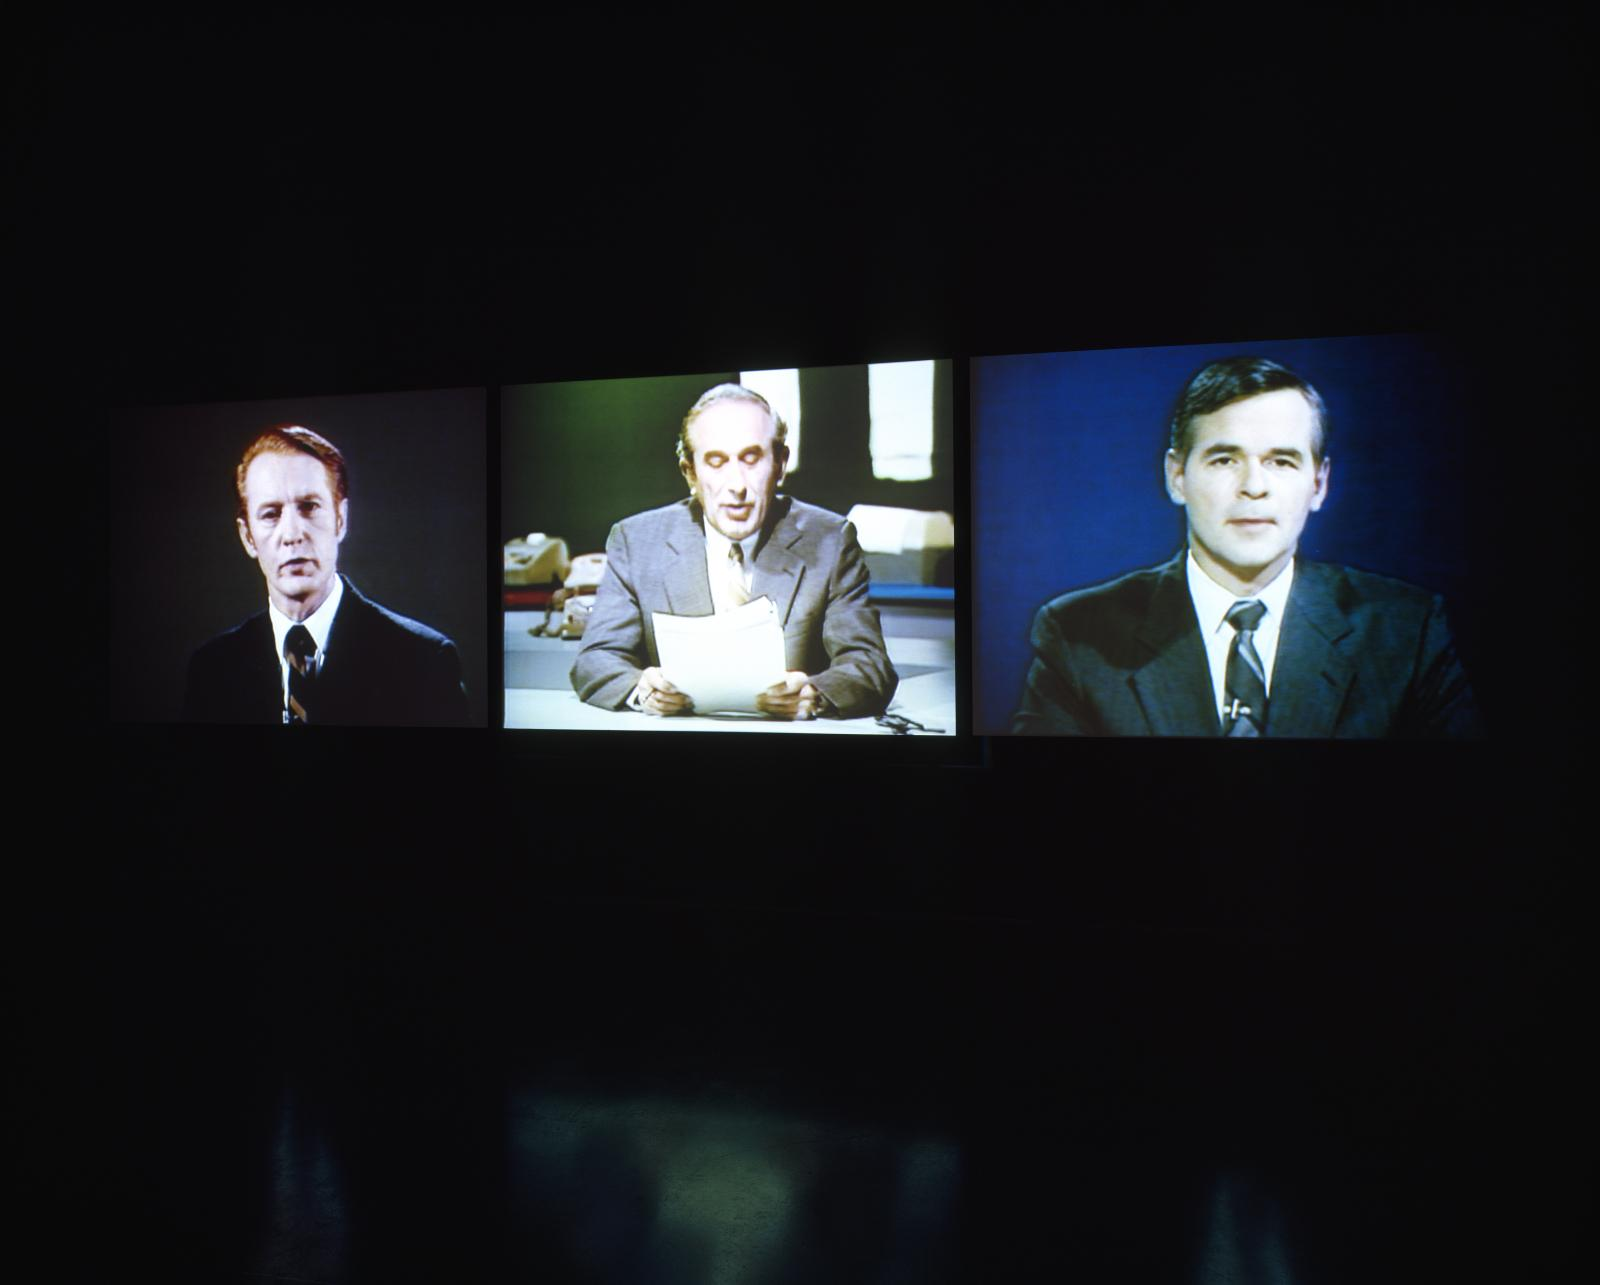 Three side-by-side screens show three different light-skinned men in suits. The men appear to be verbally addressing their audience.